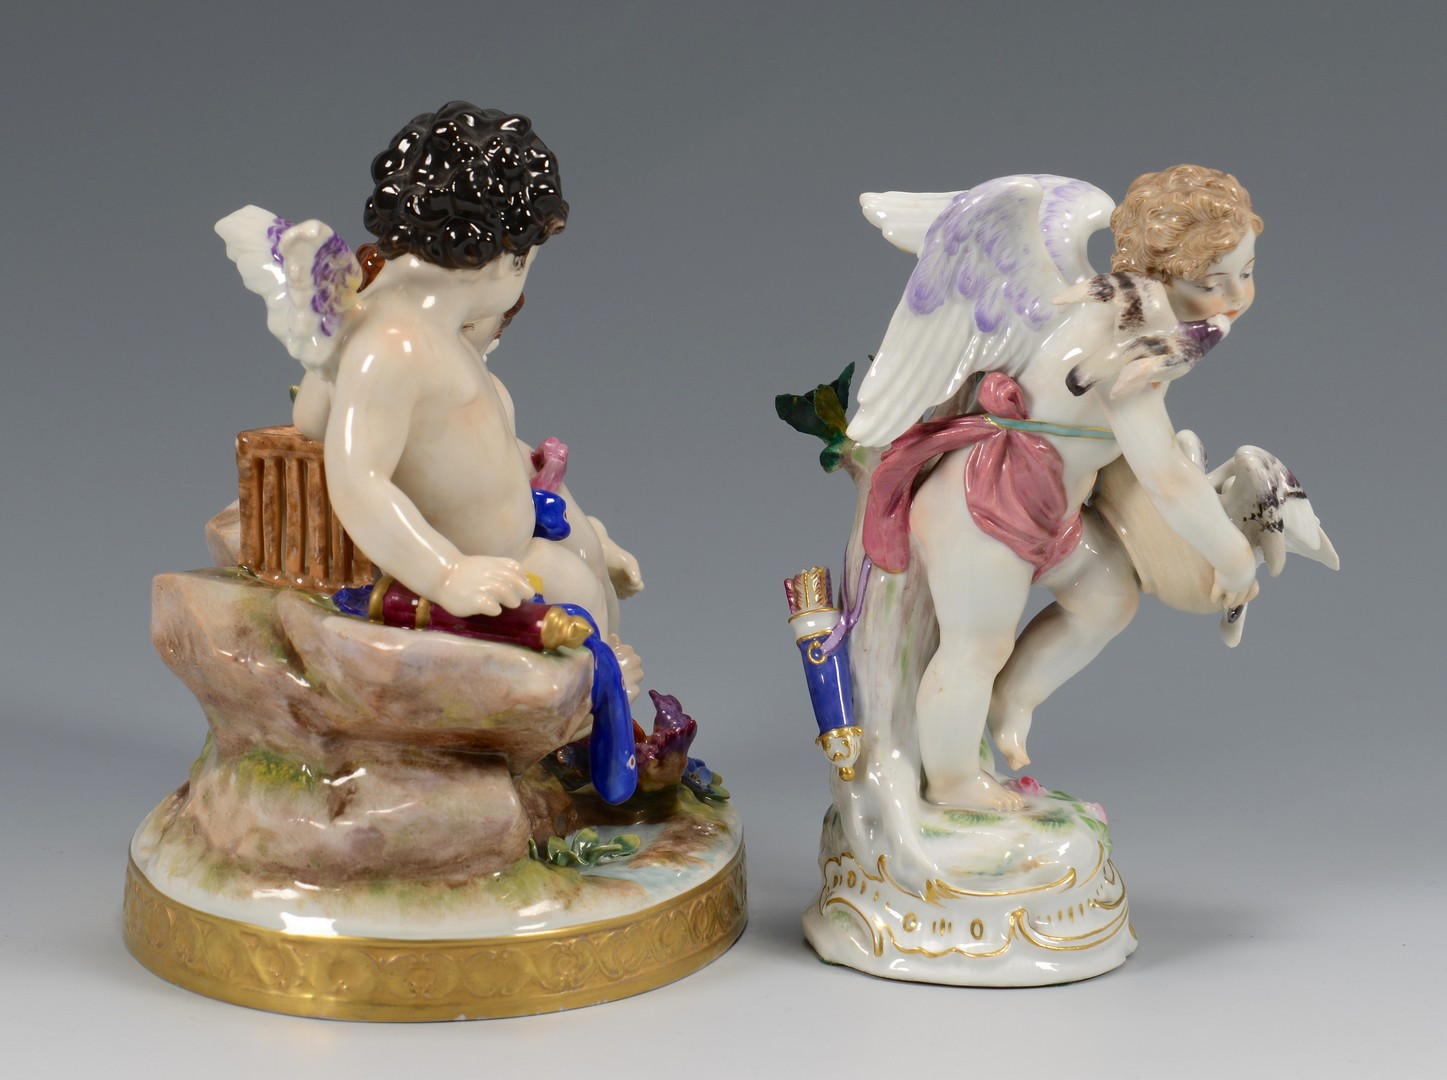 Lot 611: 2 German Porcelain Figurines, incl. Meissen